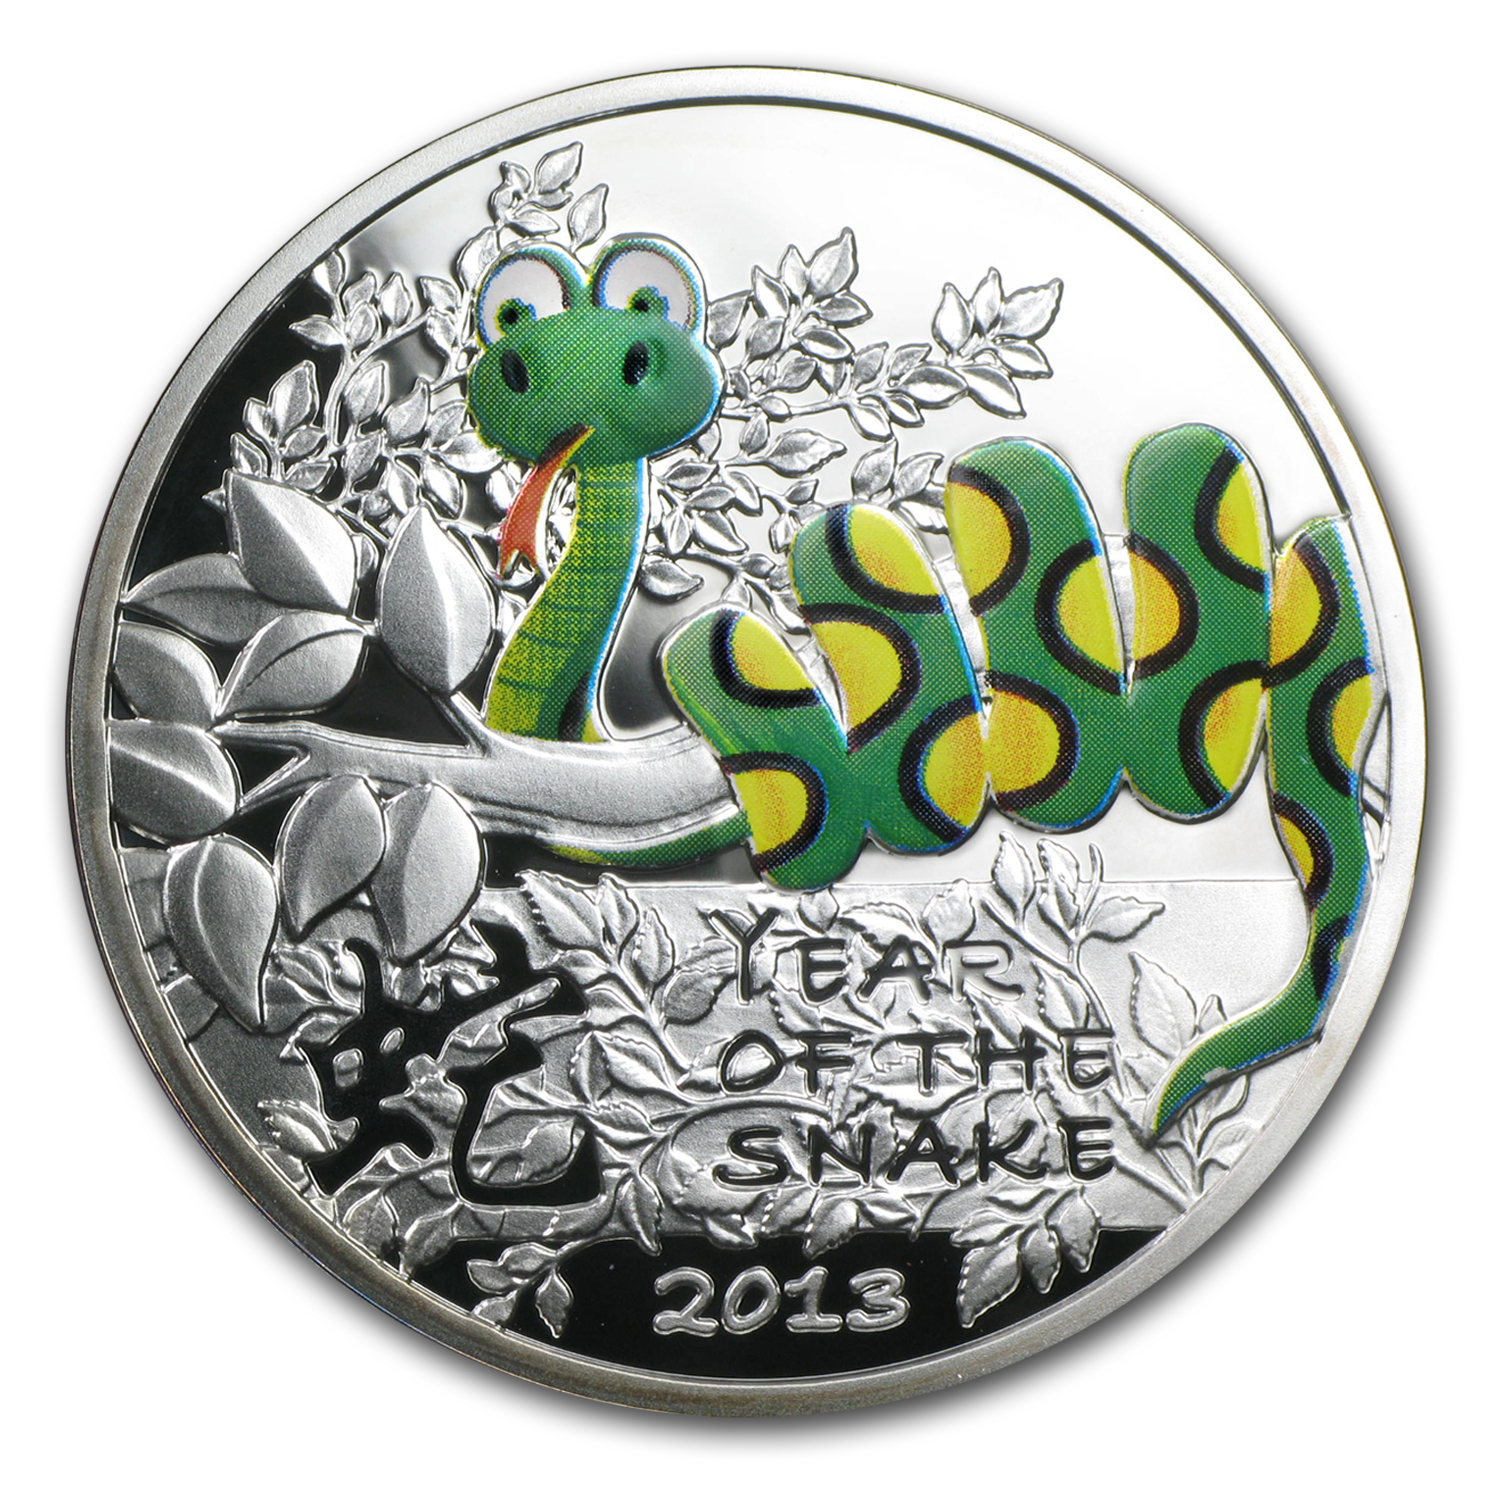 2013 Niue Proof $1 Year of the Snake Fairy Tale Snake